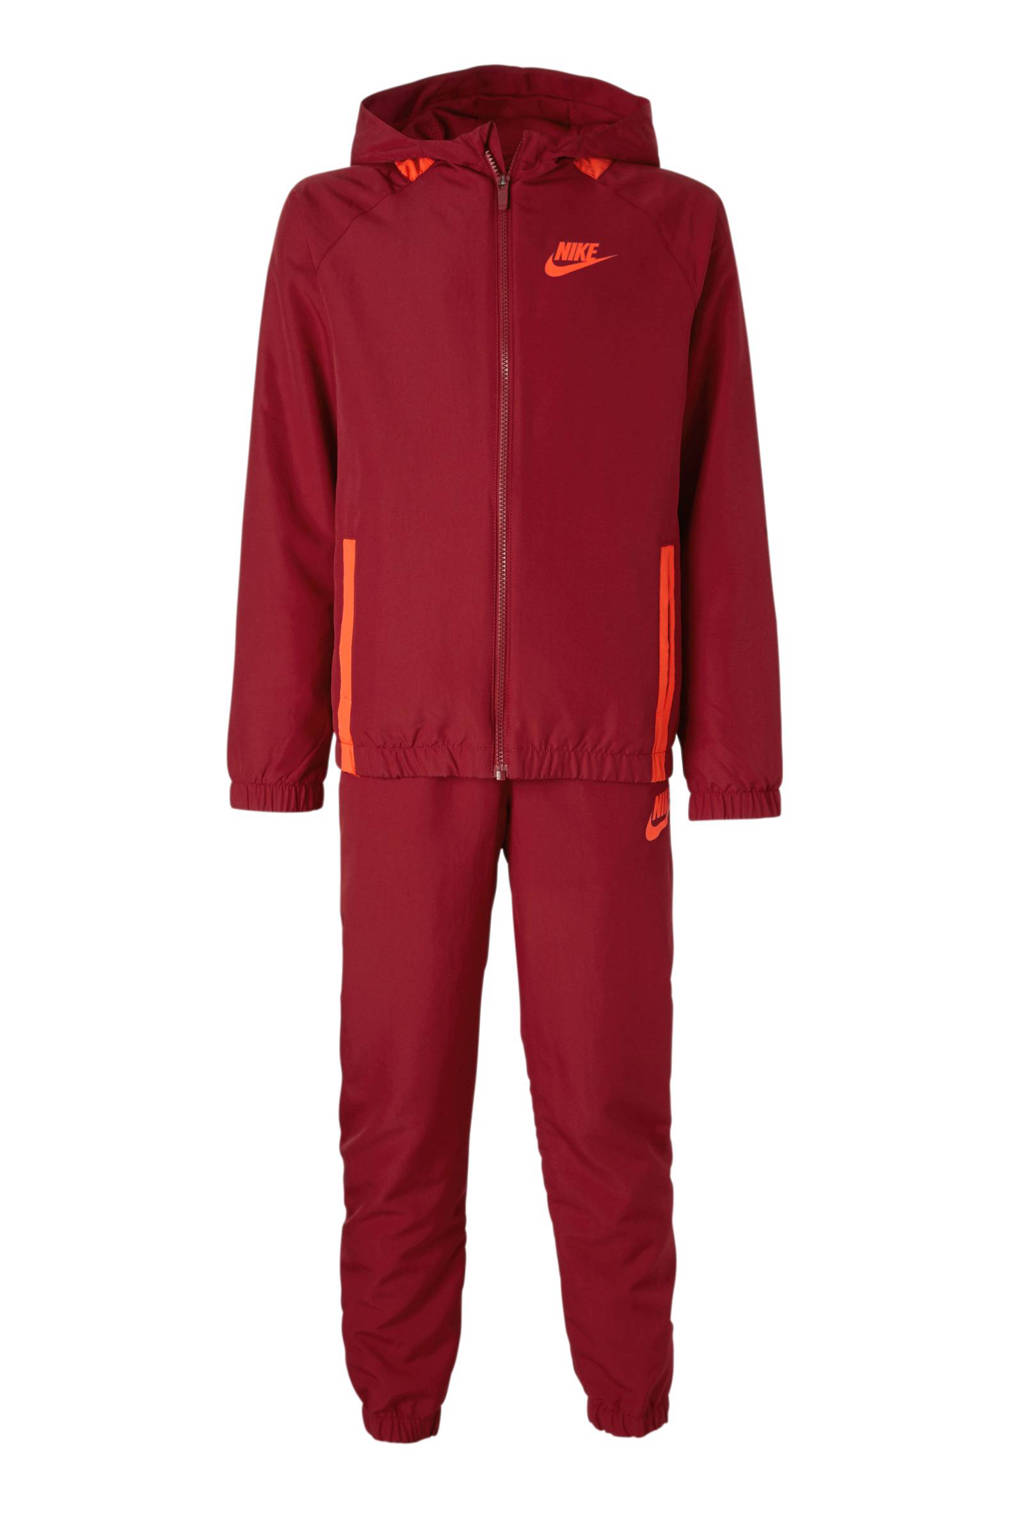 Nike   trainingspak donkerrood, Donkerrood